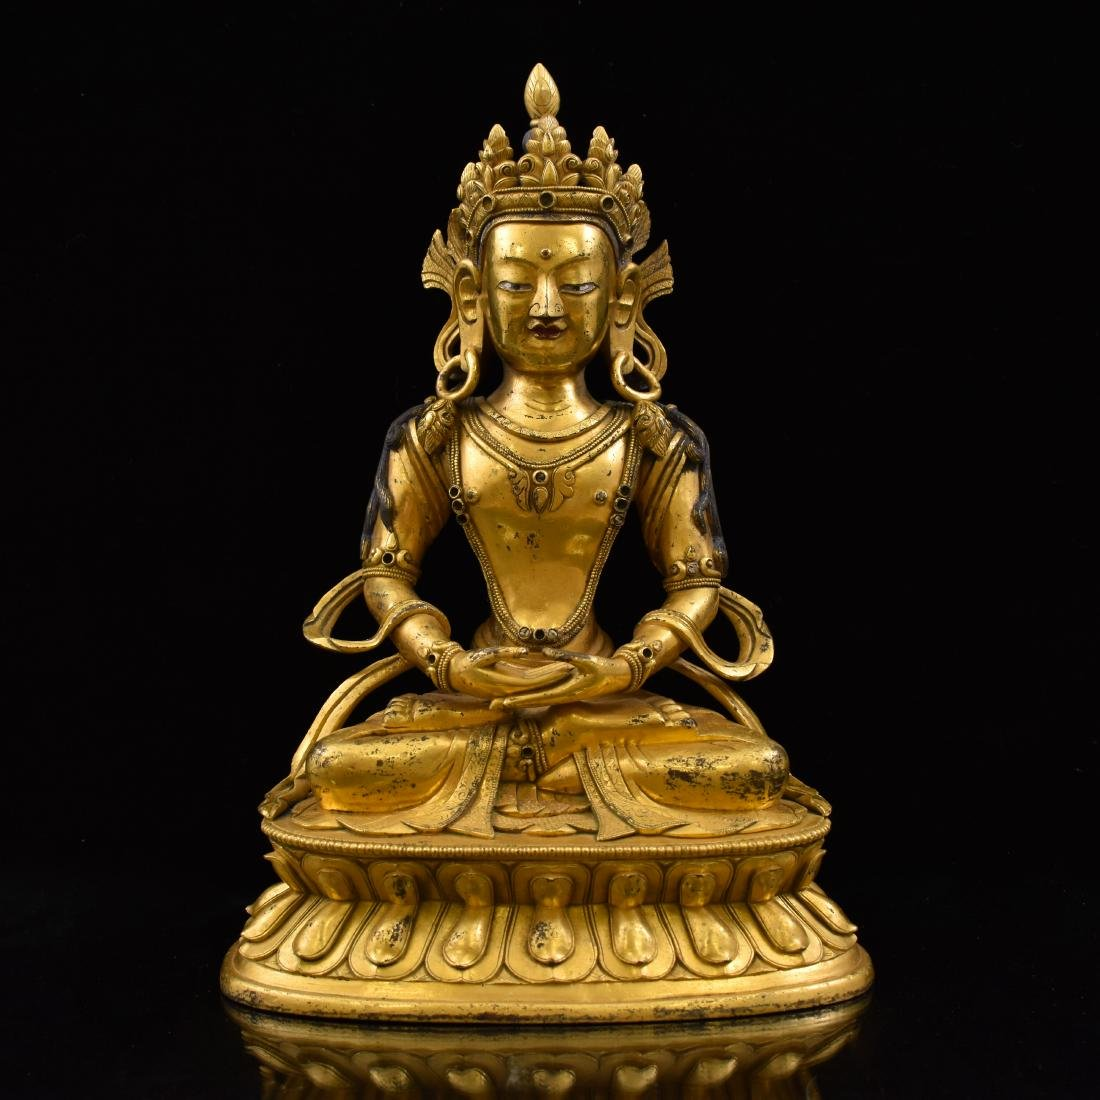 QING GILT BRONZE SEATED AMITAYUS BUDDHA